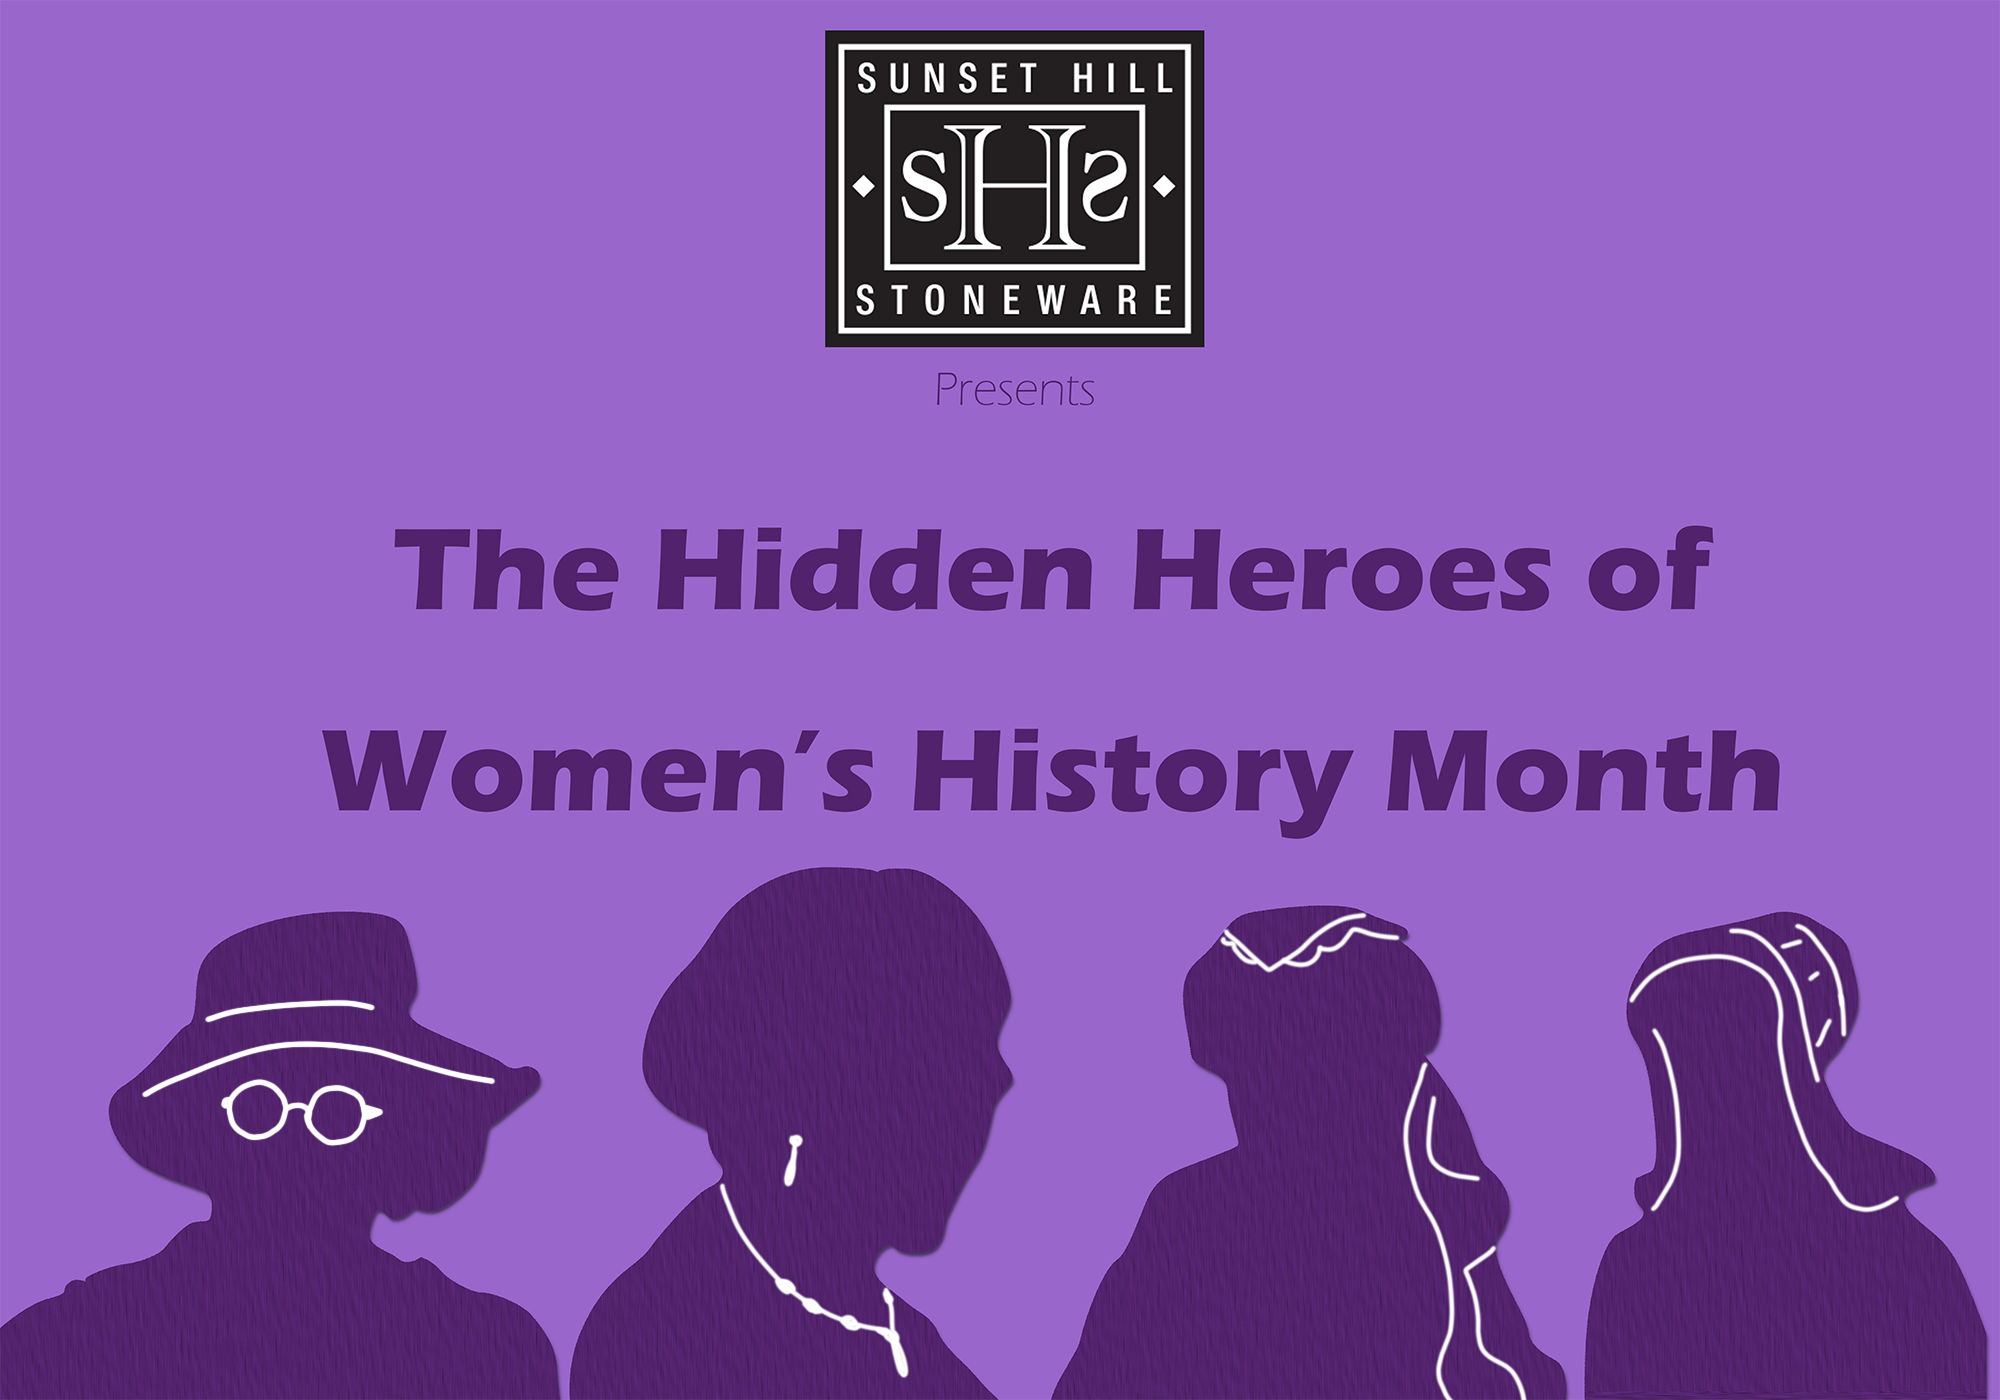 The Hidden Heroes of Women's History Month